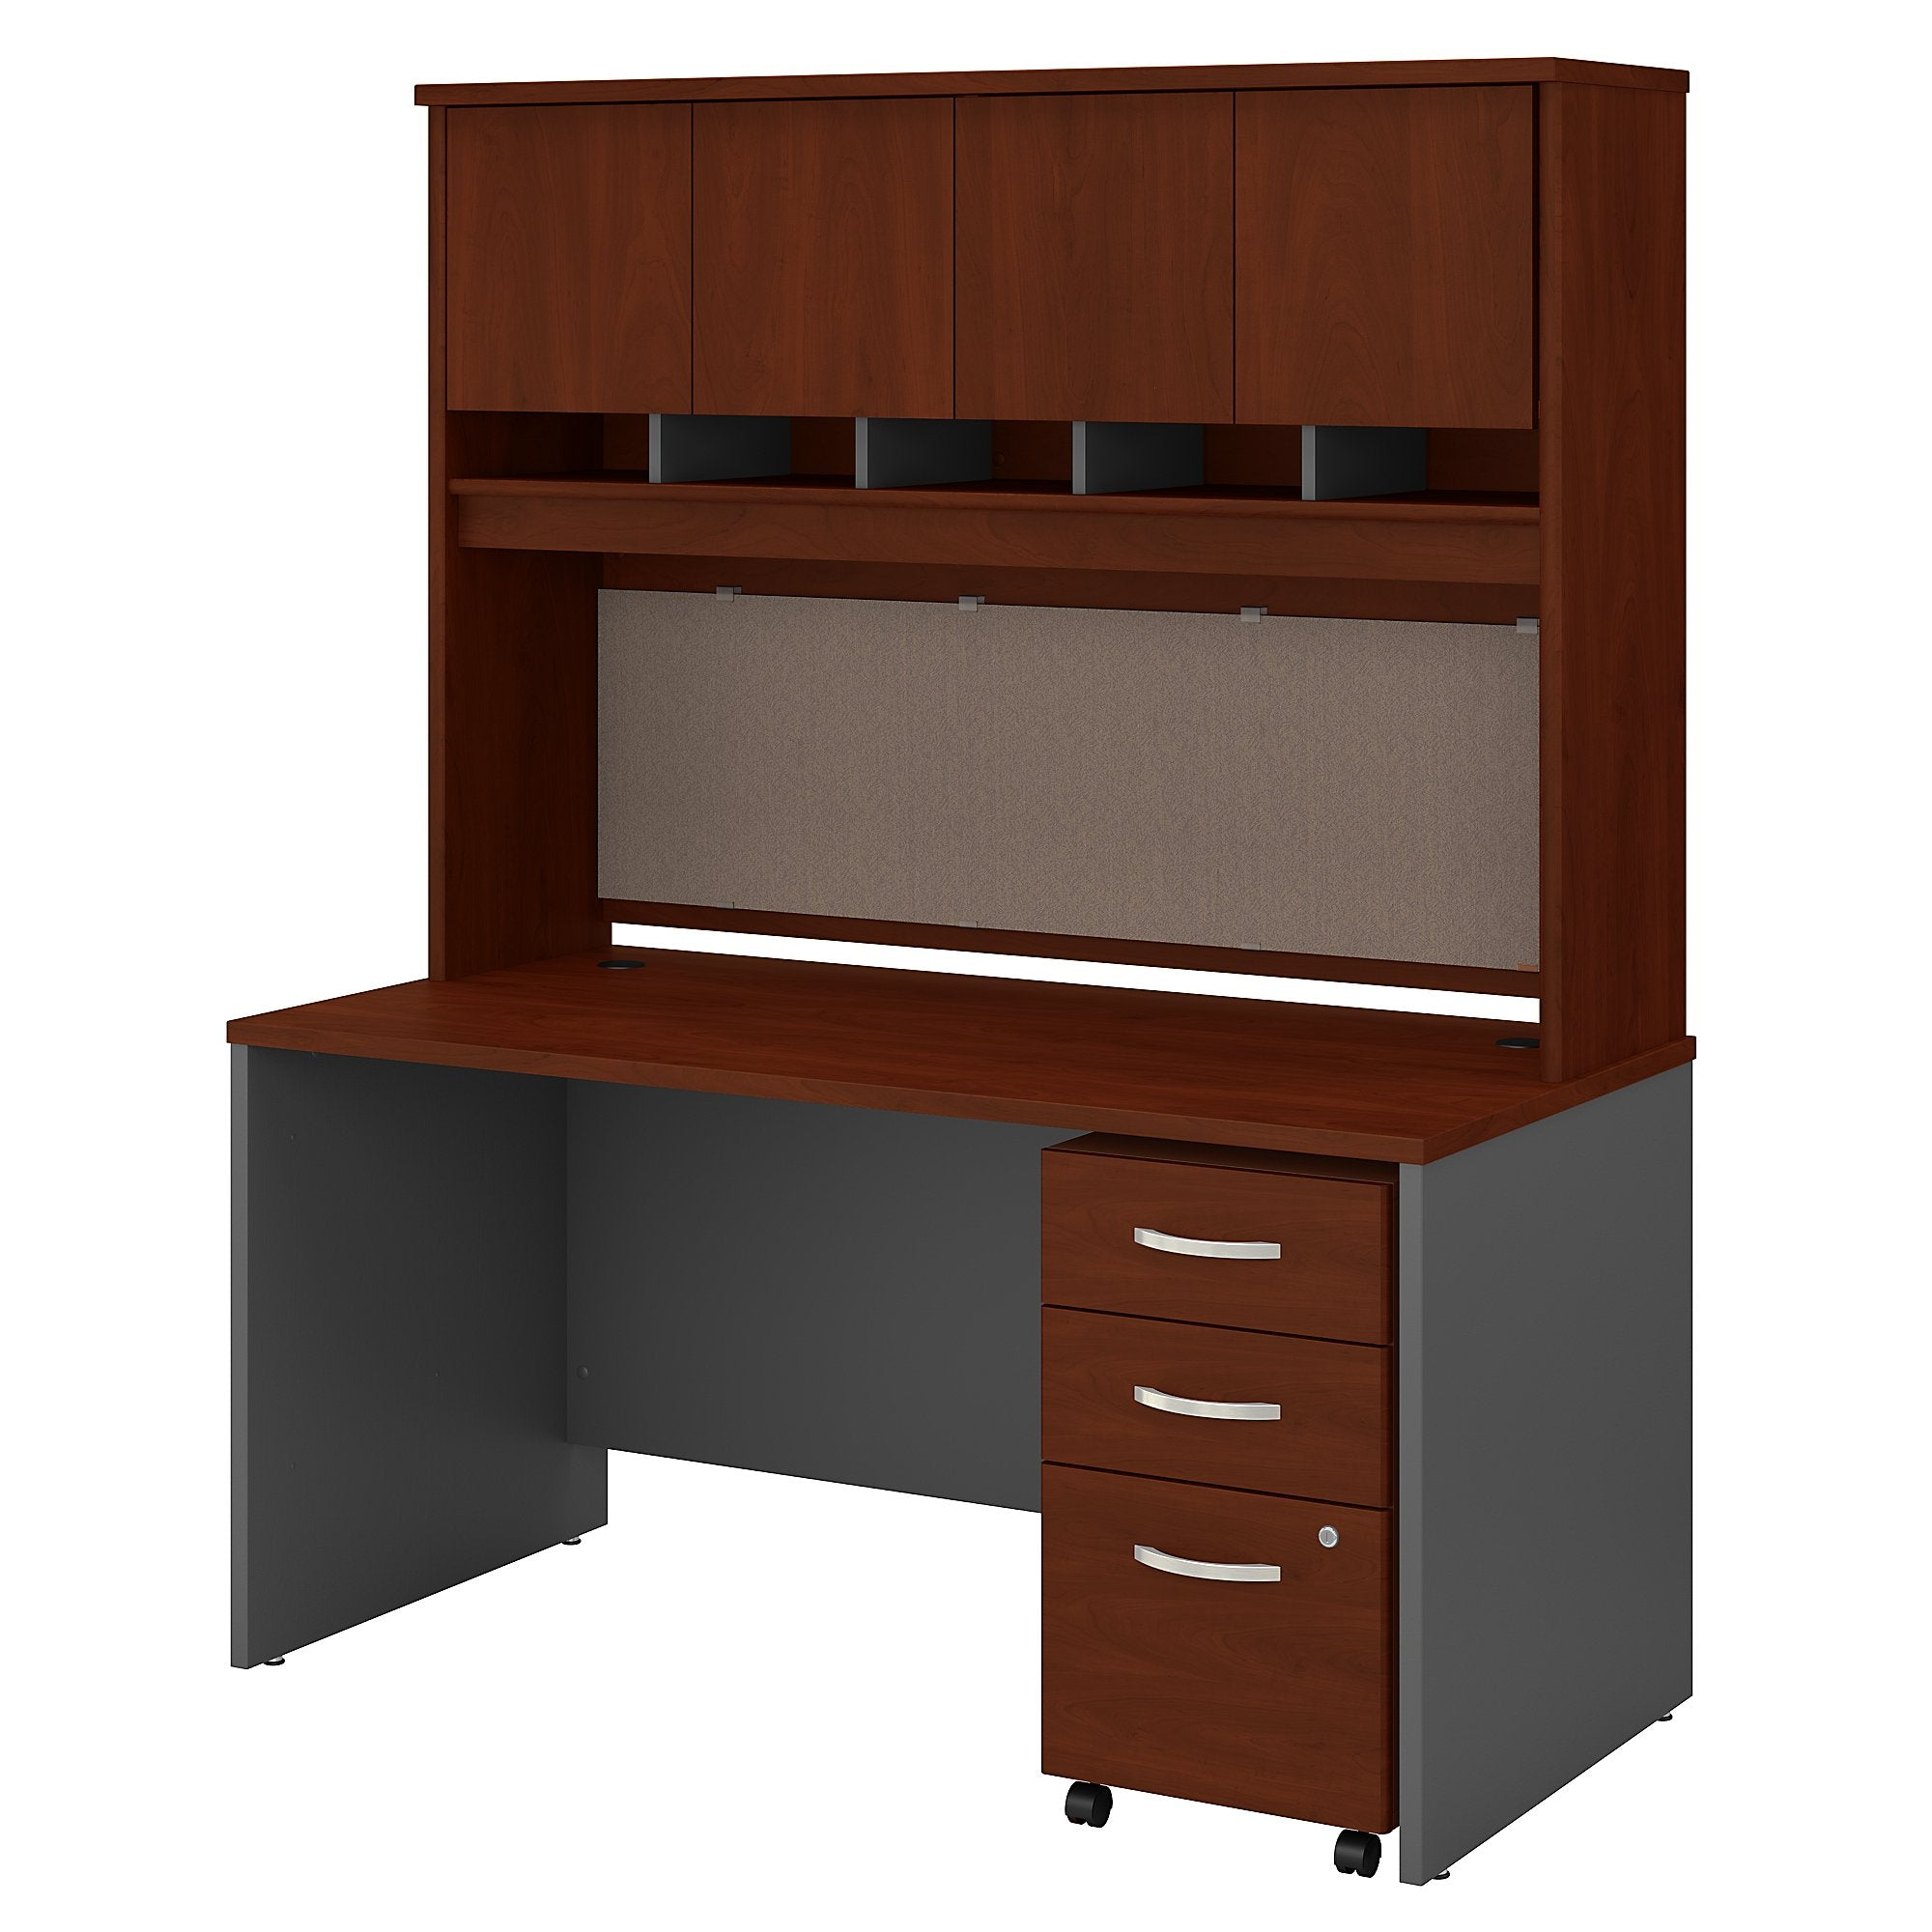 Series C 60W x 30D Office Desk with Hutch & Mobile File Cabinet